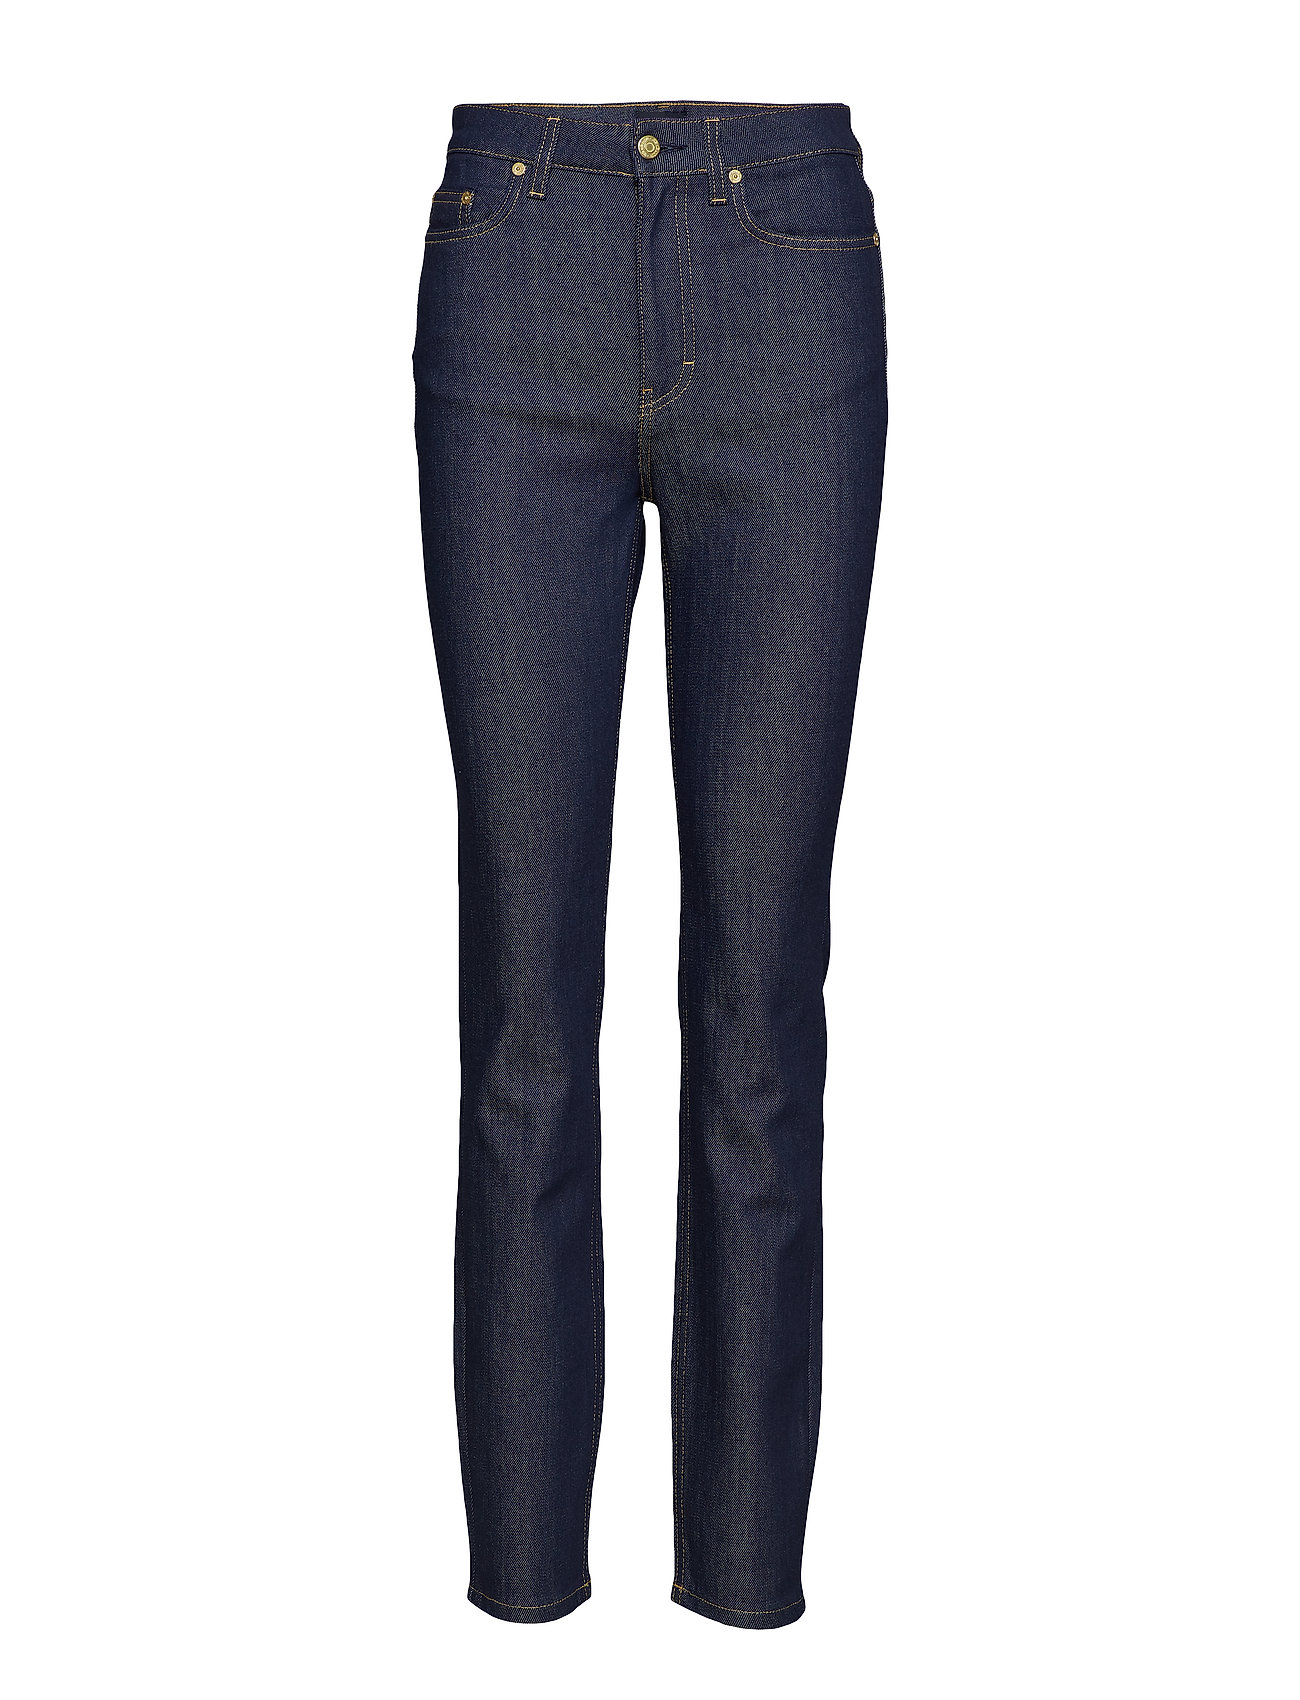 Filippa K Vicky Raw Jean - DARK BLUE